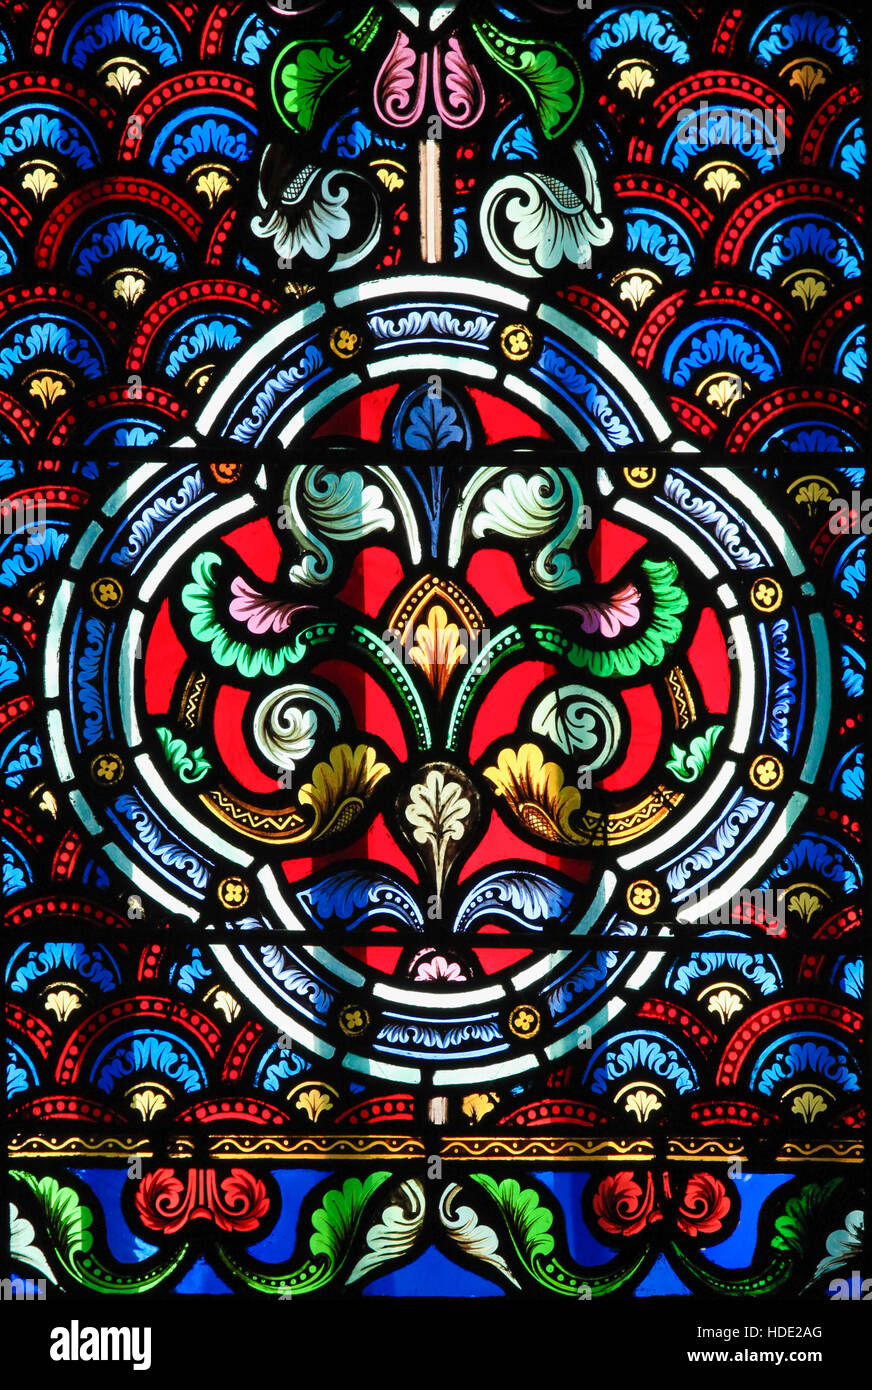 Stained Glass in Church of Saint-Germain-des-Pres in Paris, depicting a decorative pattern - Stock Image